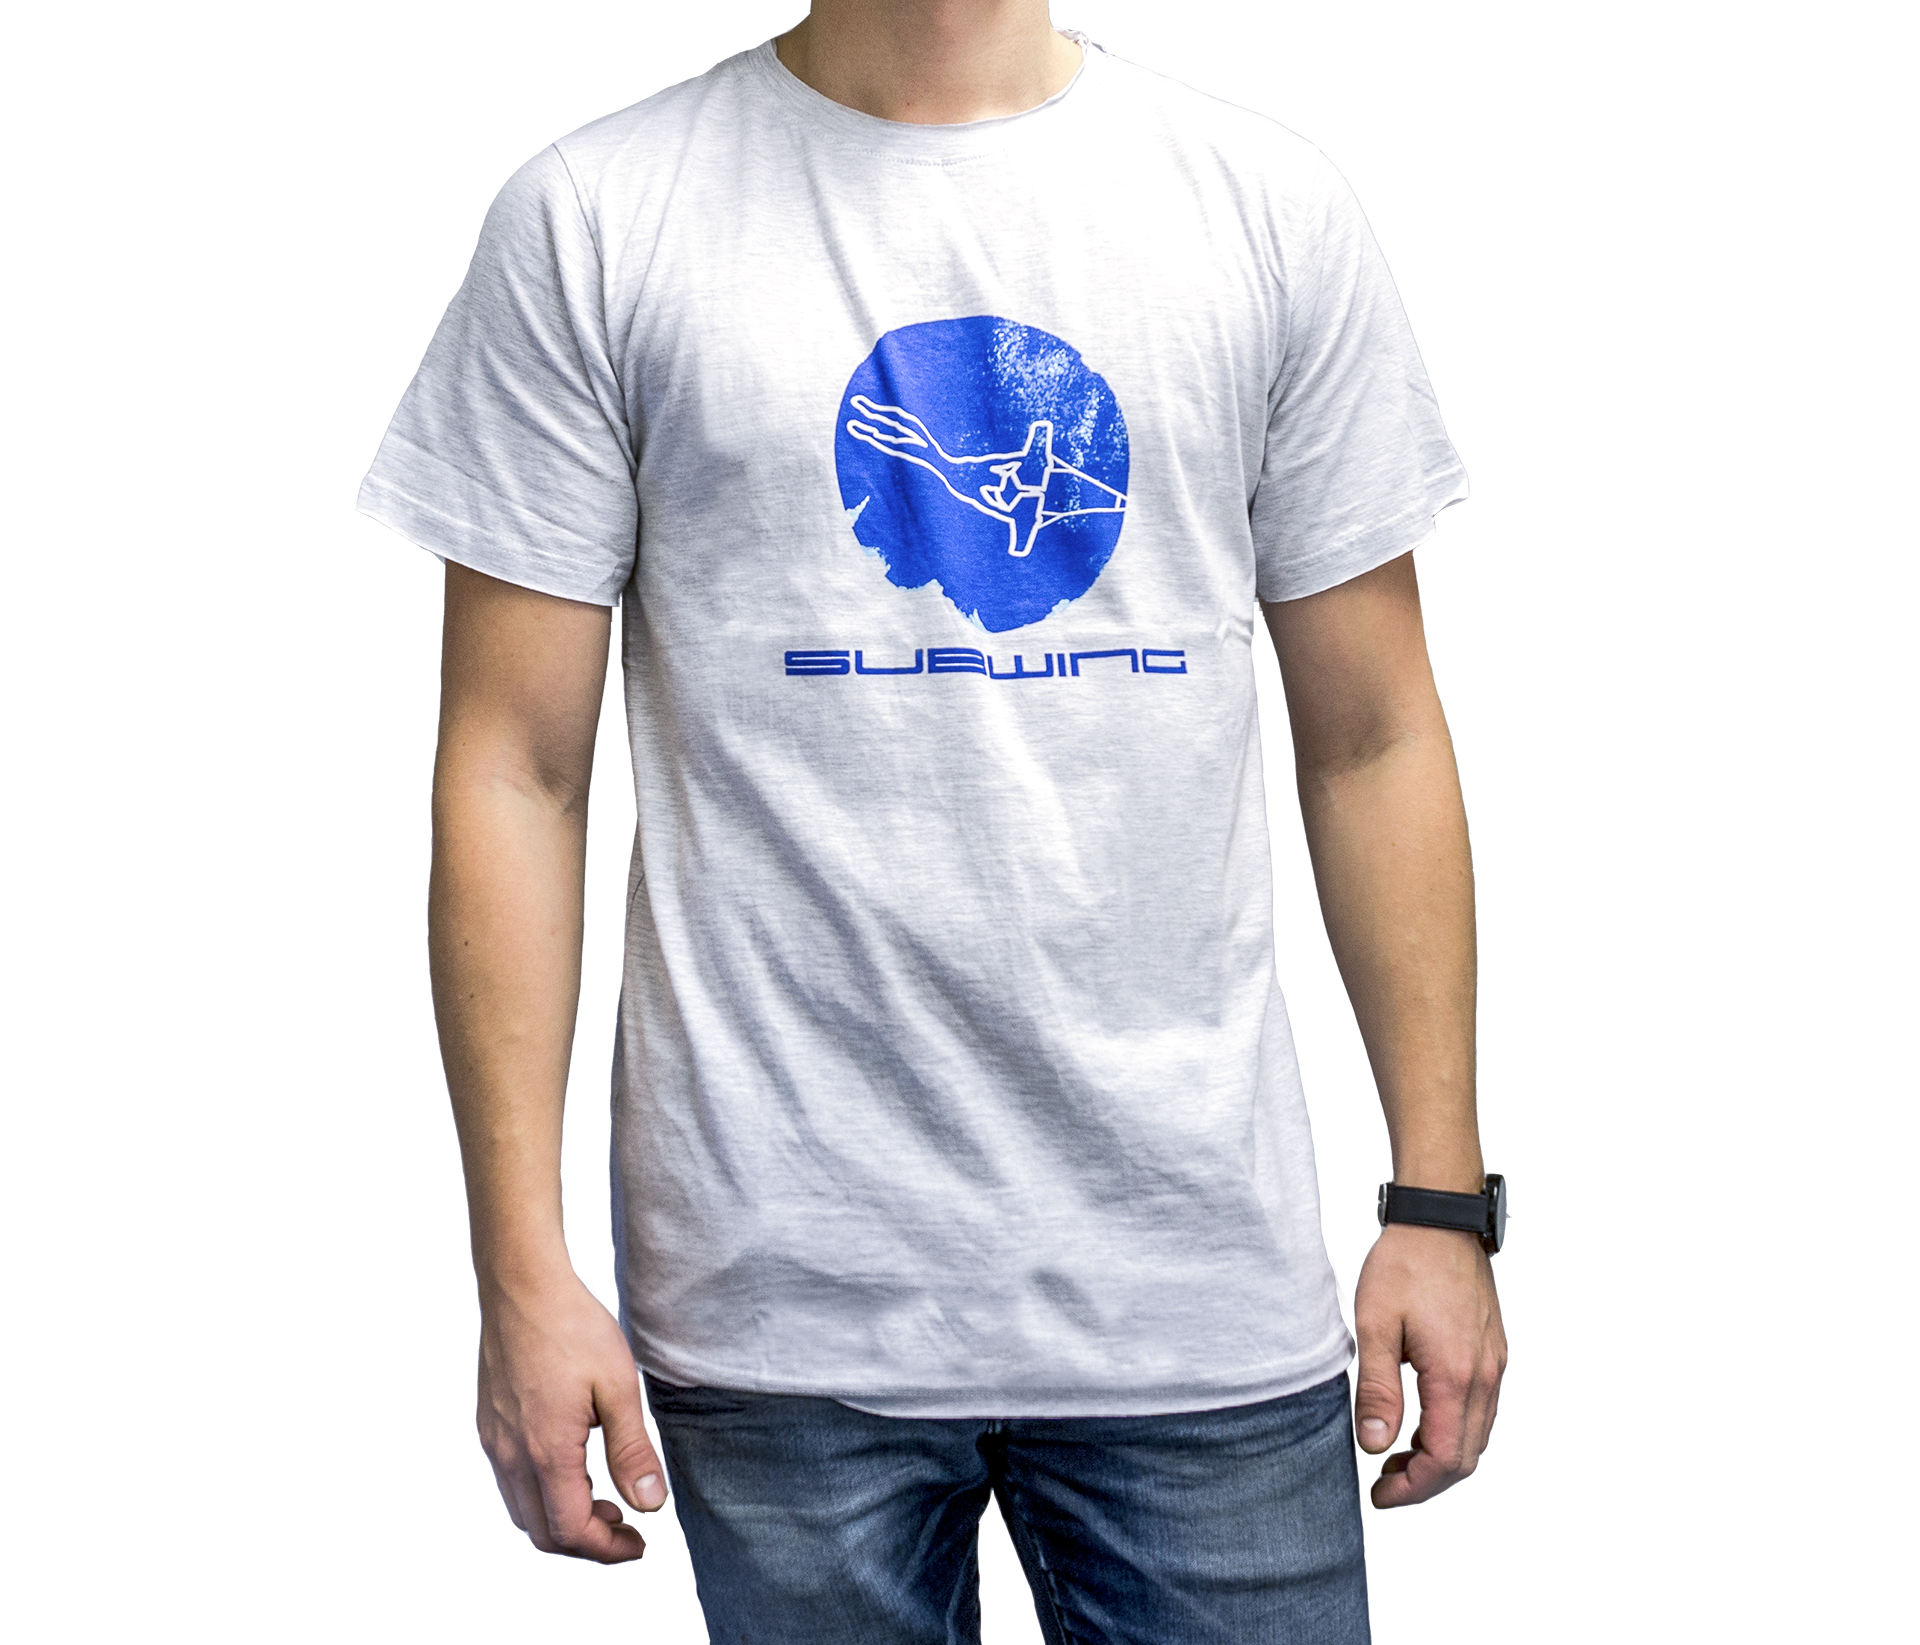 T-shirt with Subwing logo for men